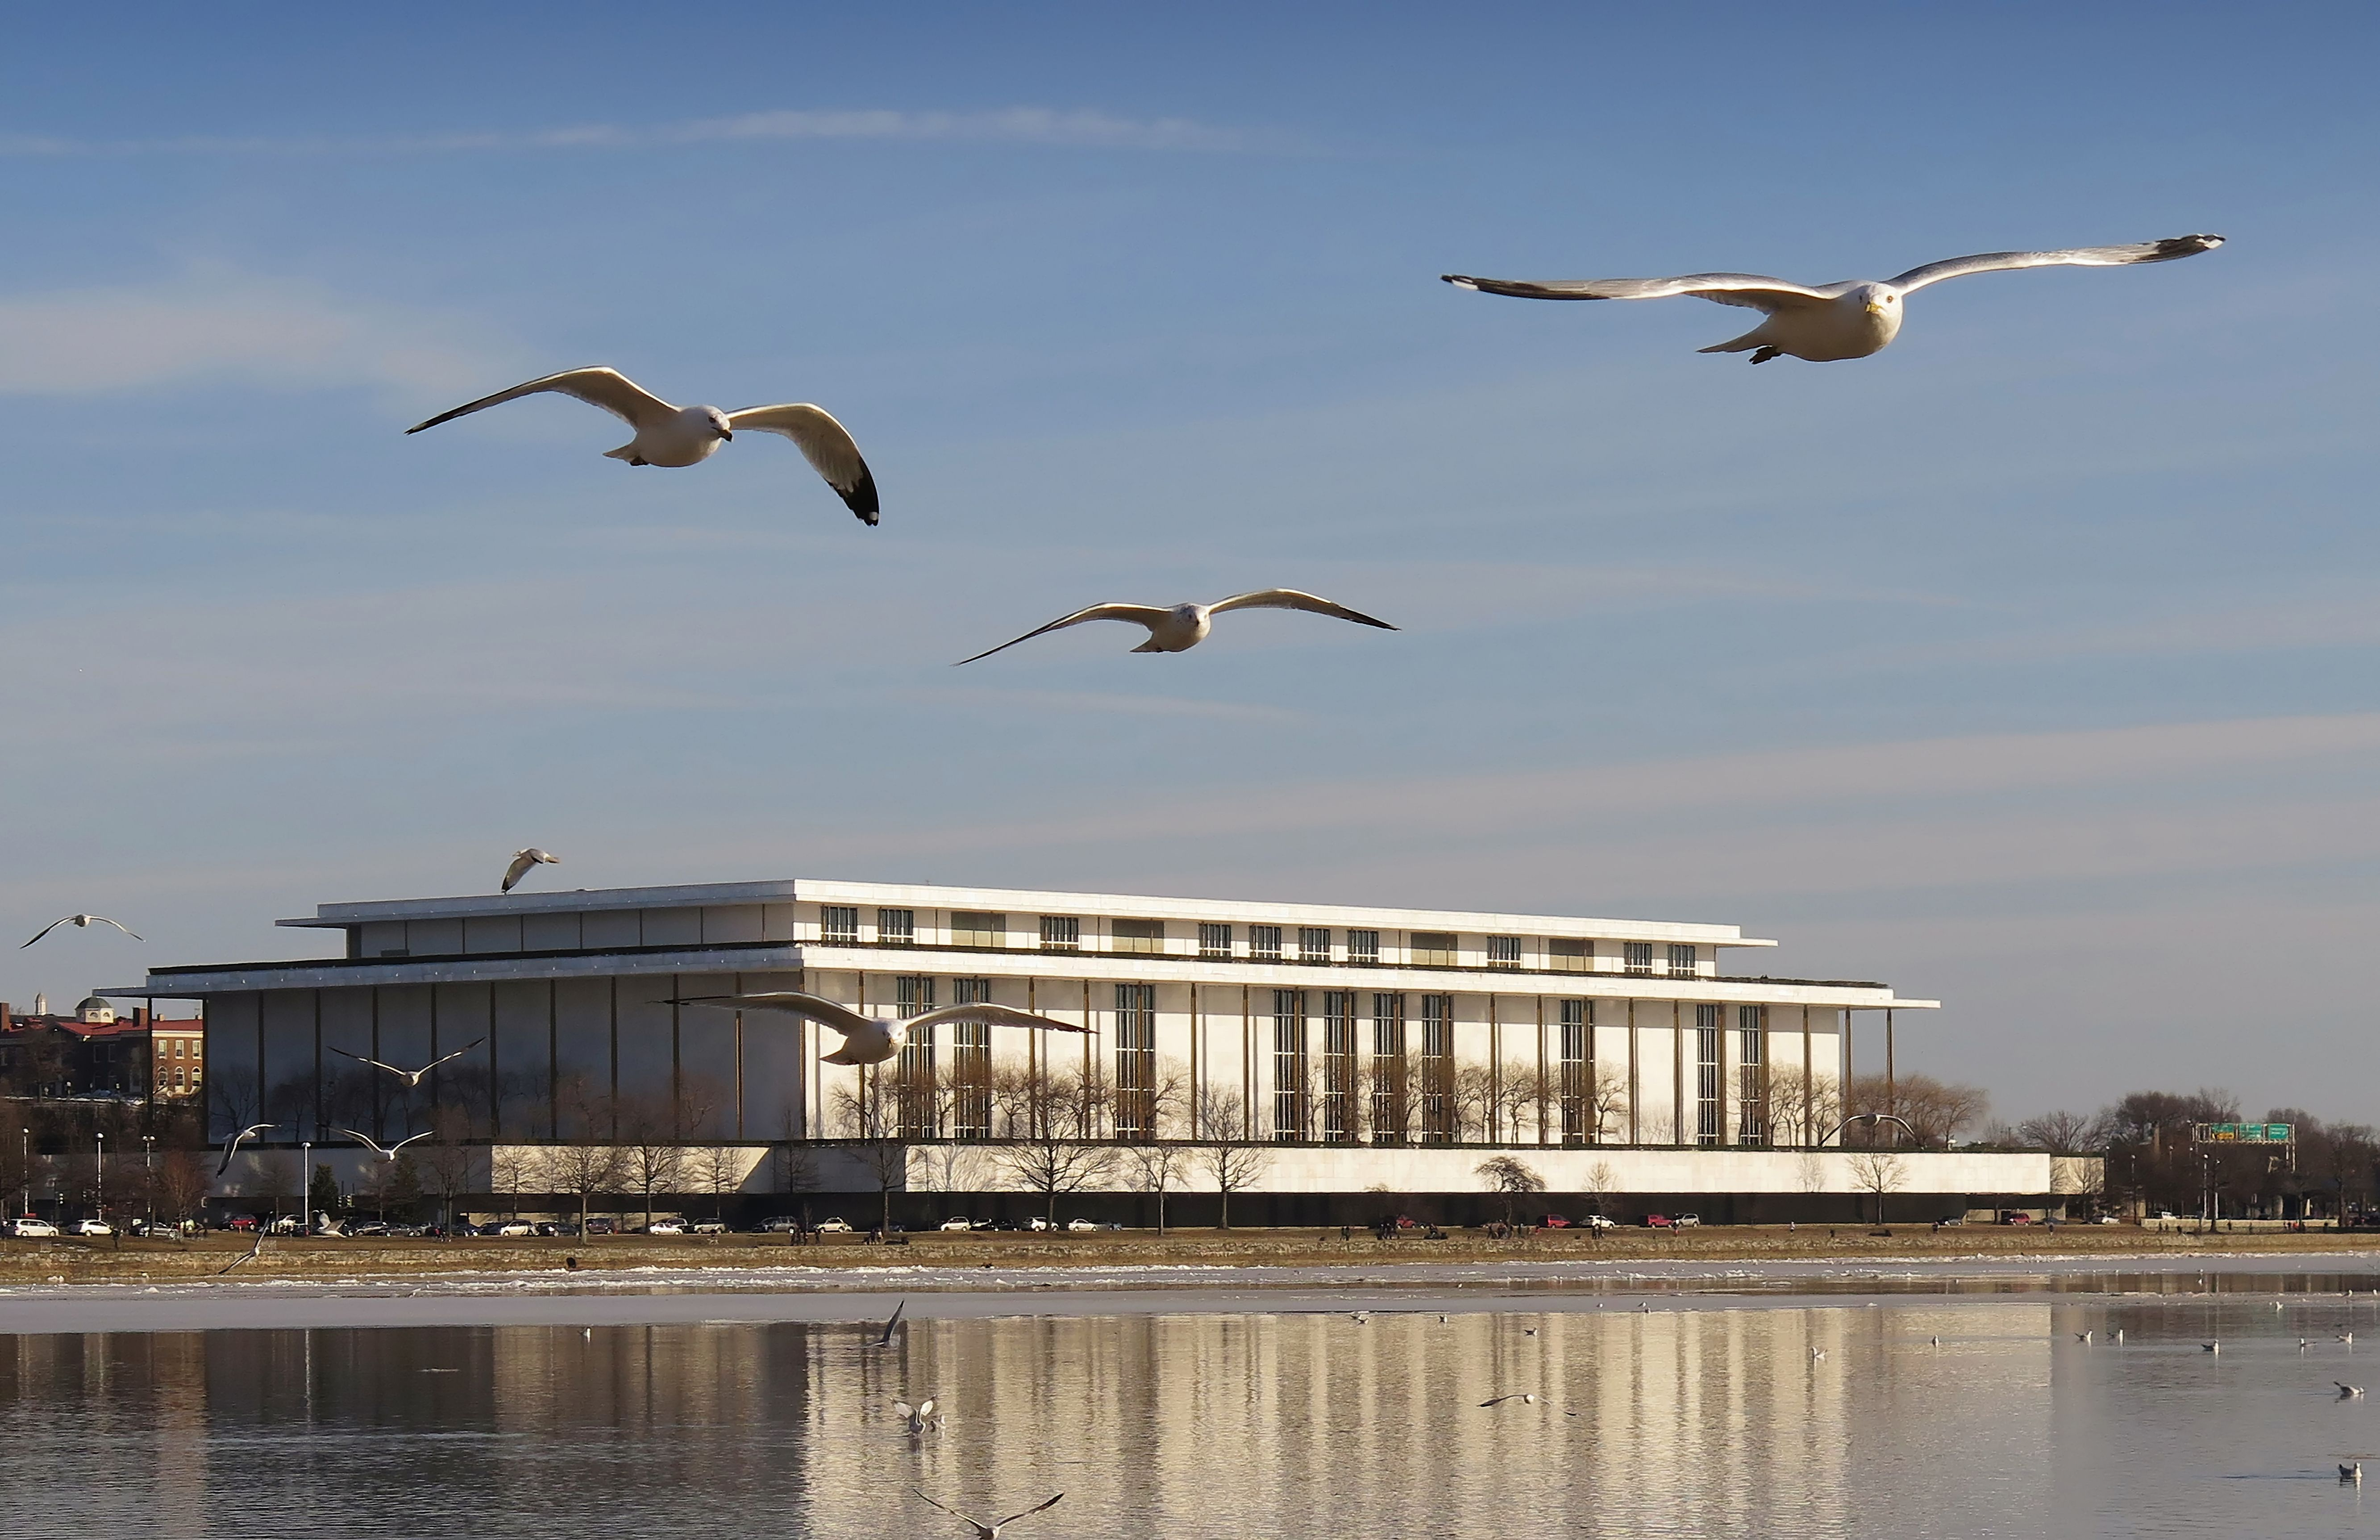 Seagulls fly in front of the John F. Kennedy Center for the Performing Arts, Washington DC